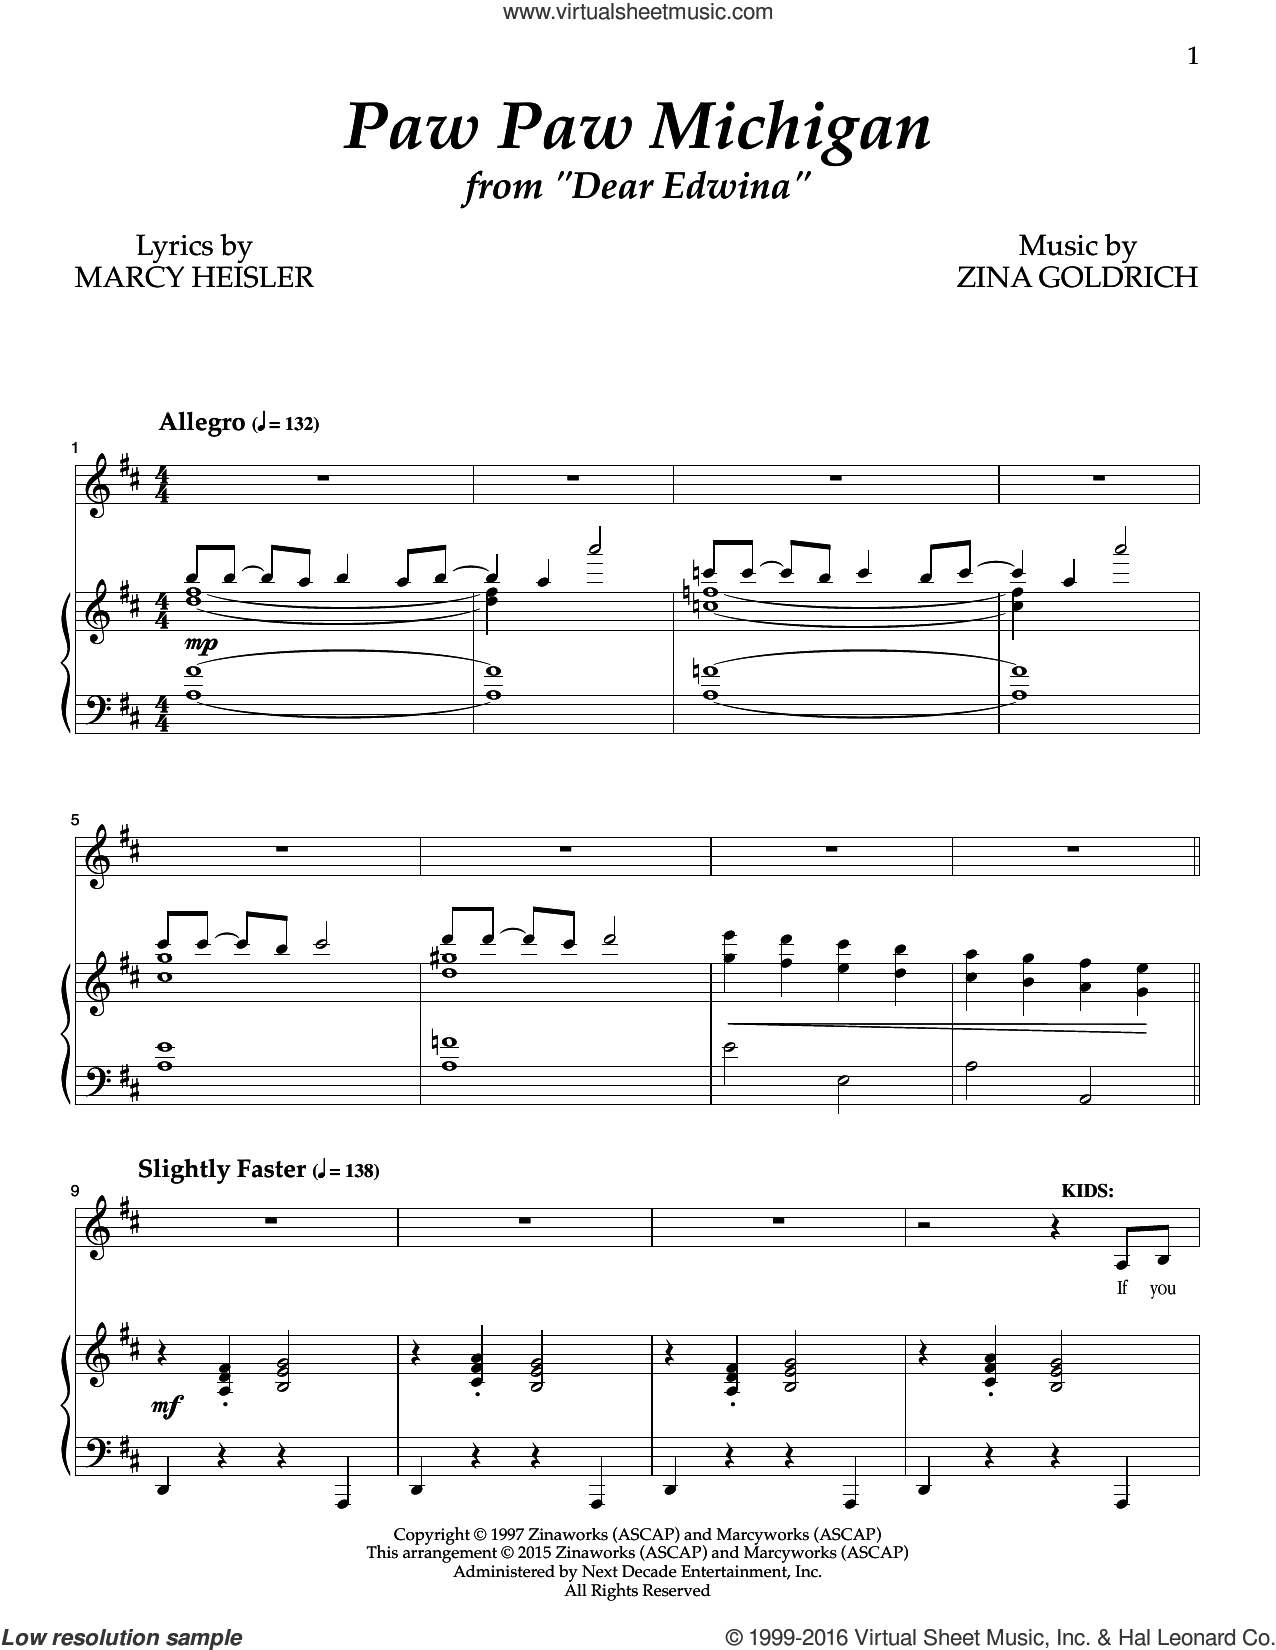 Paw Paw Michigan sheet music for voice and piano by Zina Goldrich, Goldrich & Heisler and Marcy Heisler. Score Image Preview.